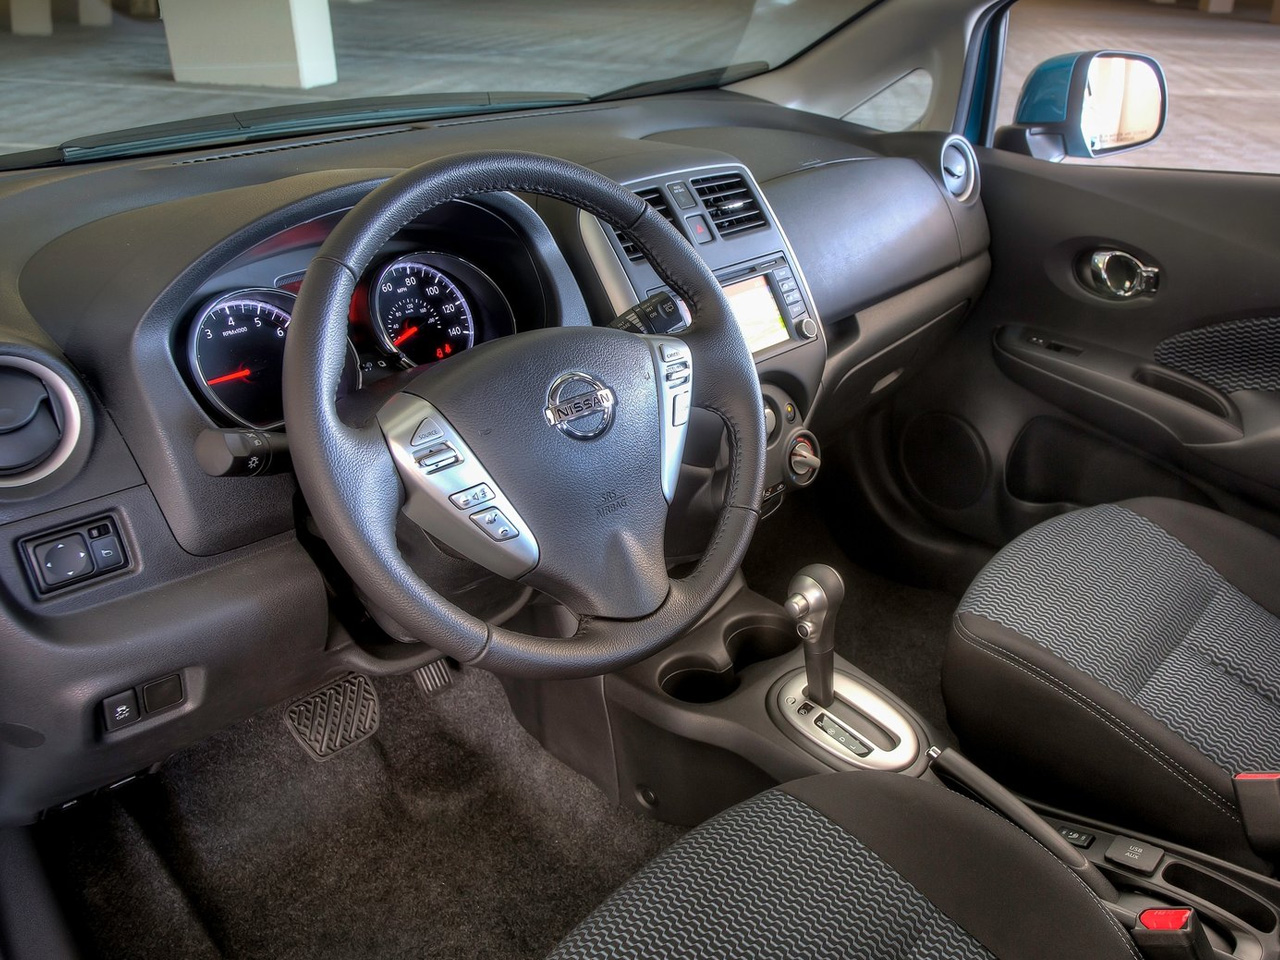 2014 nissan versa note information and photos zombiedrive 2014 nissan versa note 14 nissan versa note 14 vanachro Gallery